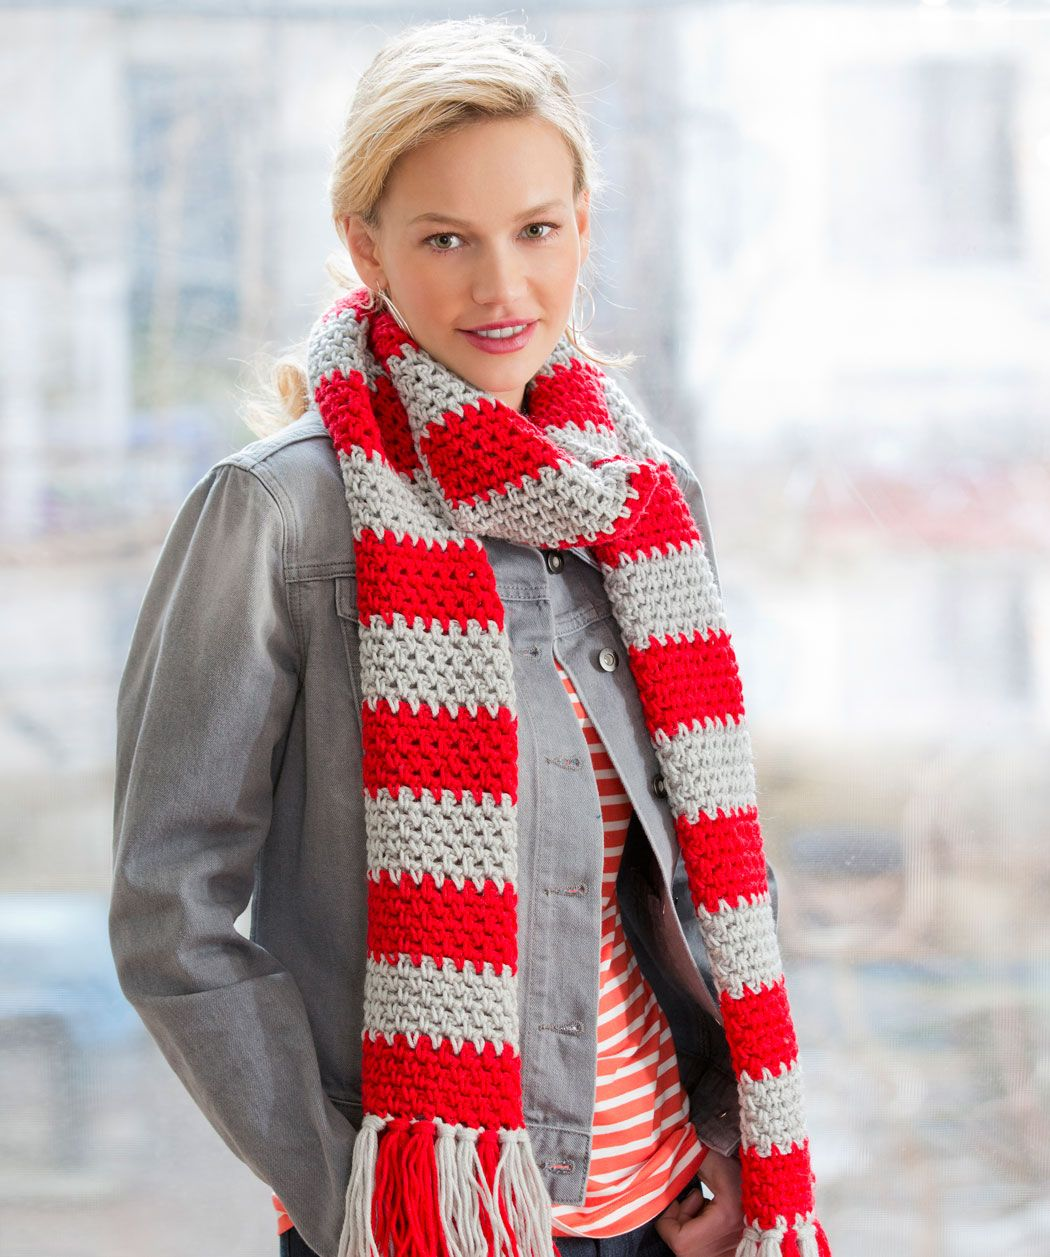 My team forever scarf use this self striping yarn to show your my team forever scarf red heart team spirit easy bankloansurffo Image collections